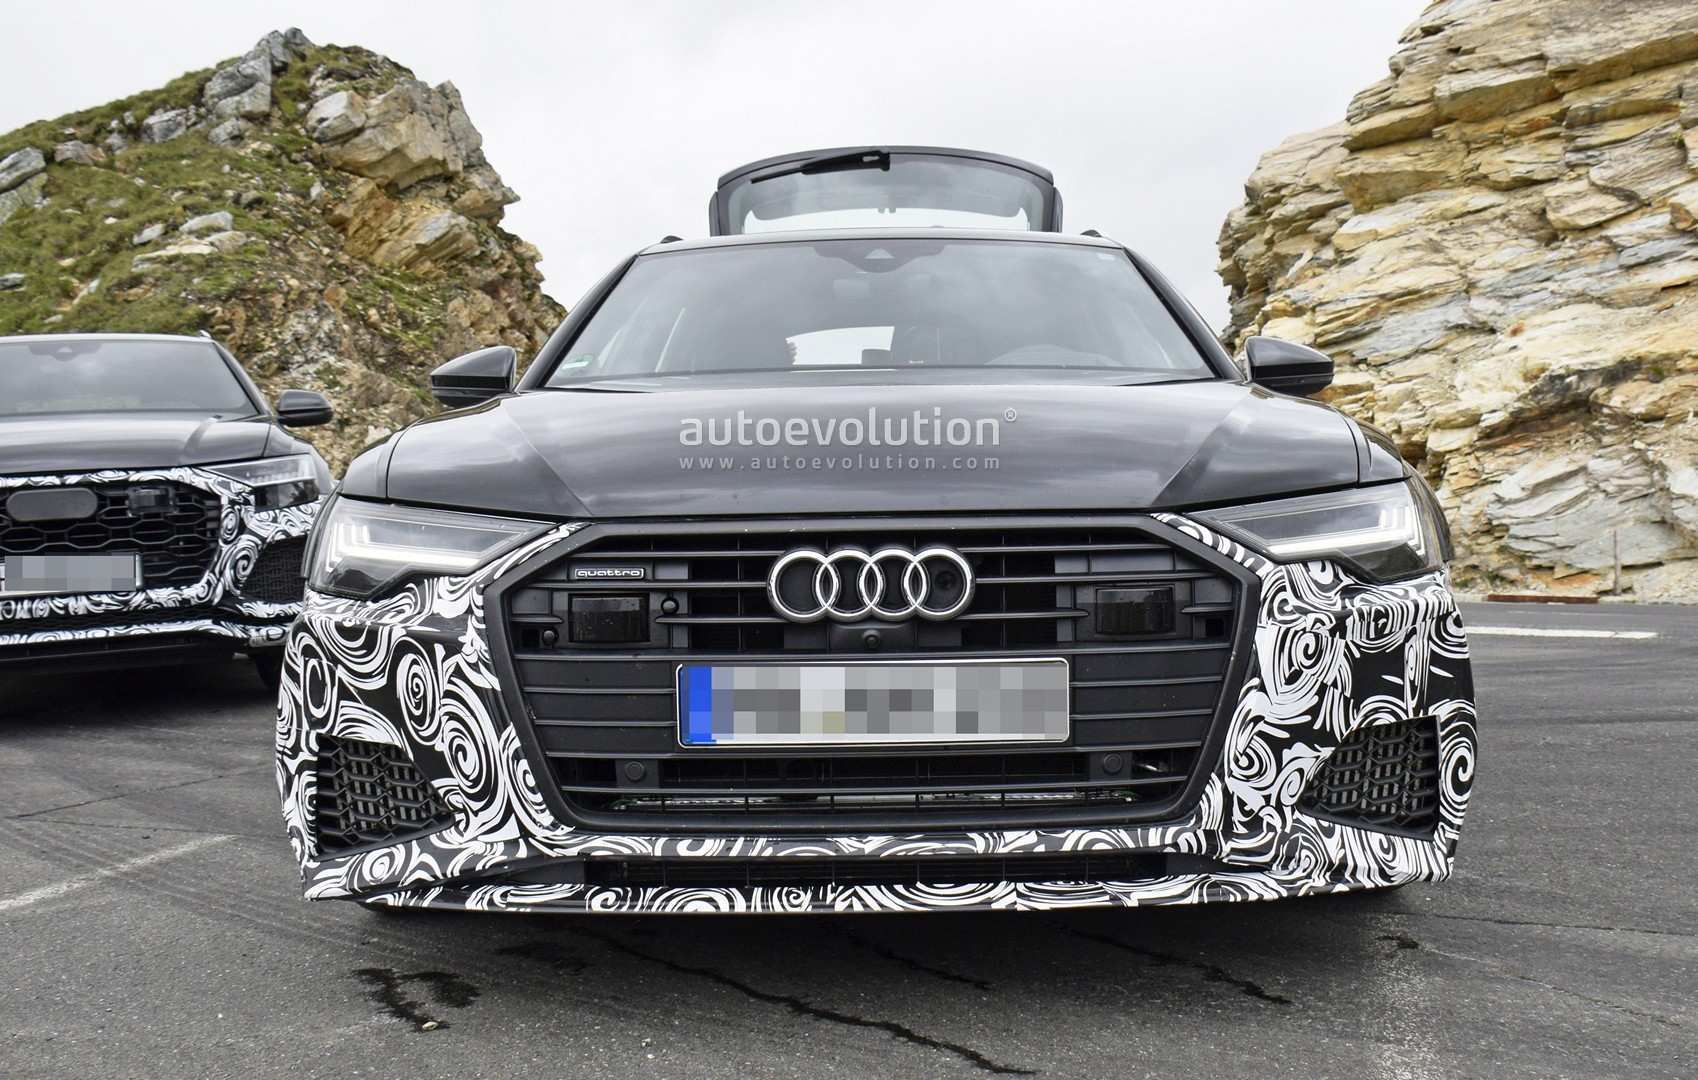 99 Great 2020 Audi Rs6 Spy Shoot for 2020 Audi Rs6